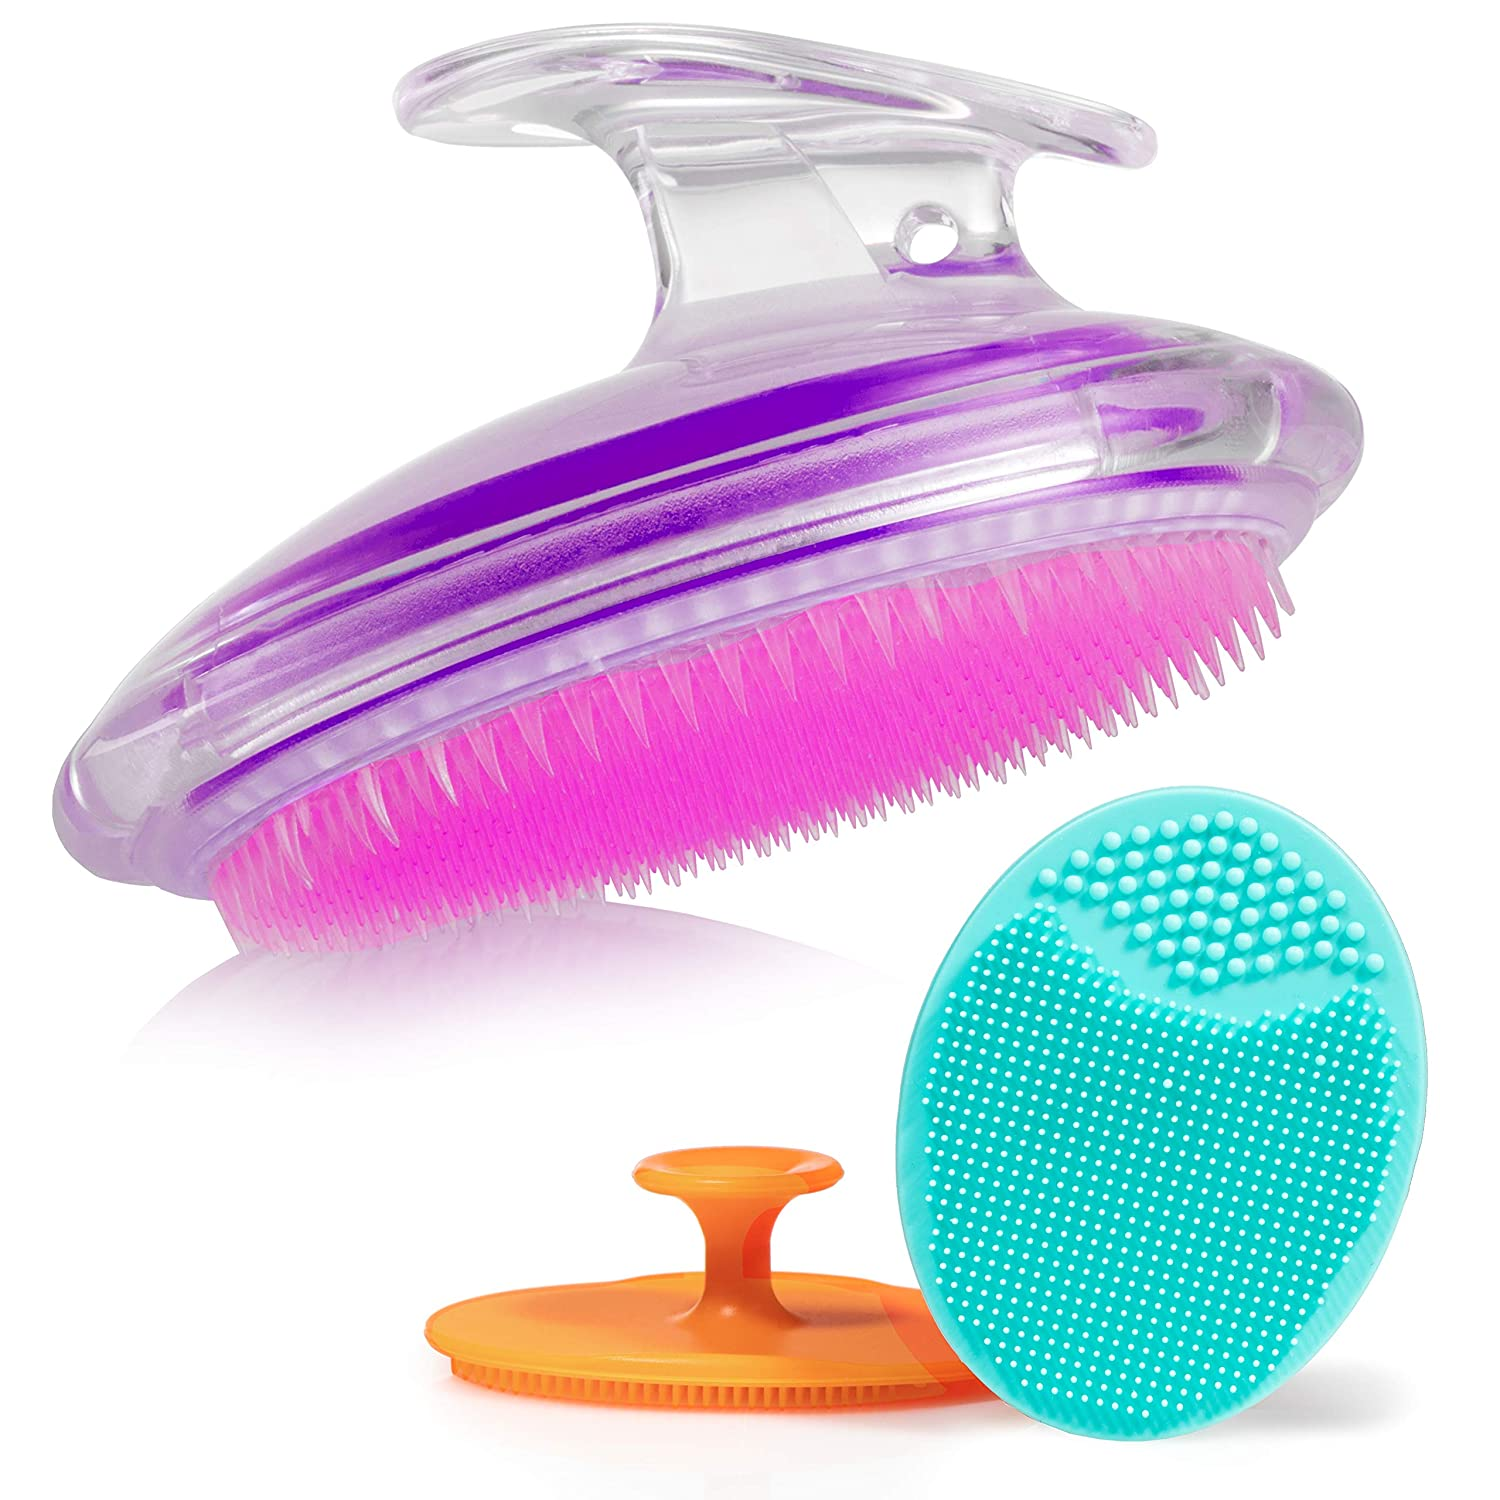 Amazon Com Exfoliating Brush For Razor Bumps And Ingrown Hair Treatment Silicone Face Scrubbers Face And Body